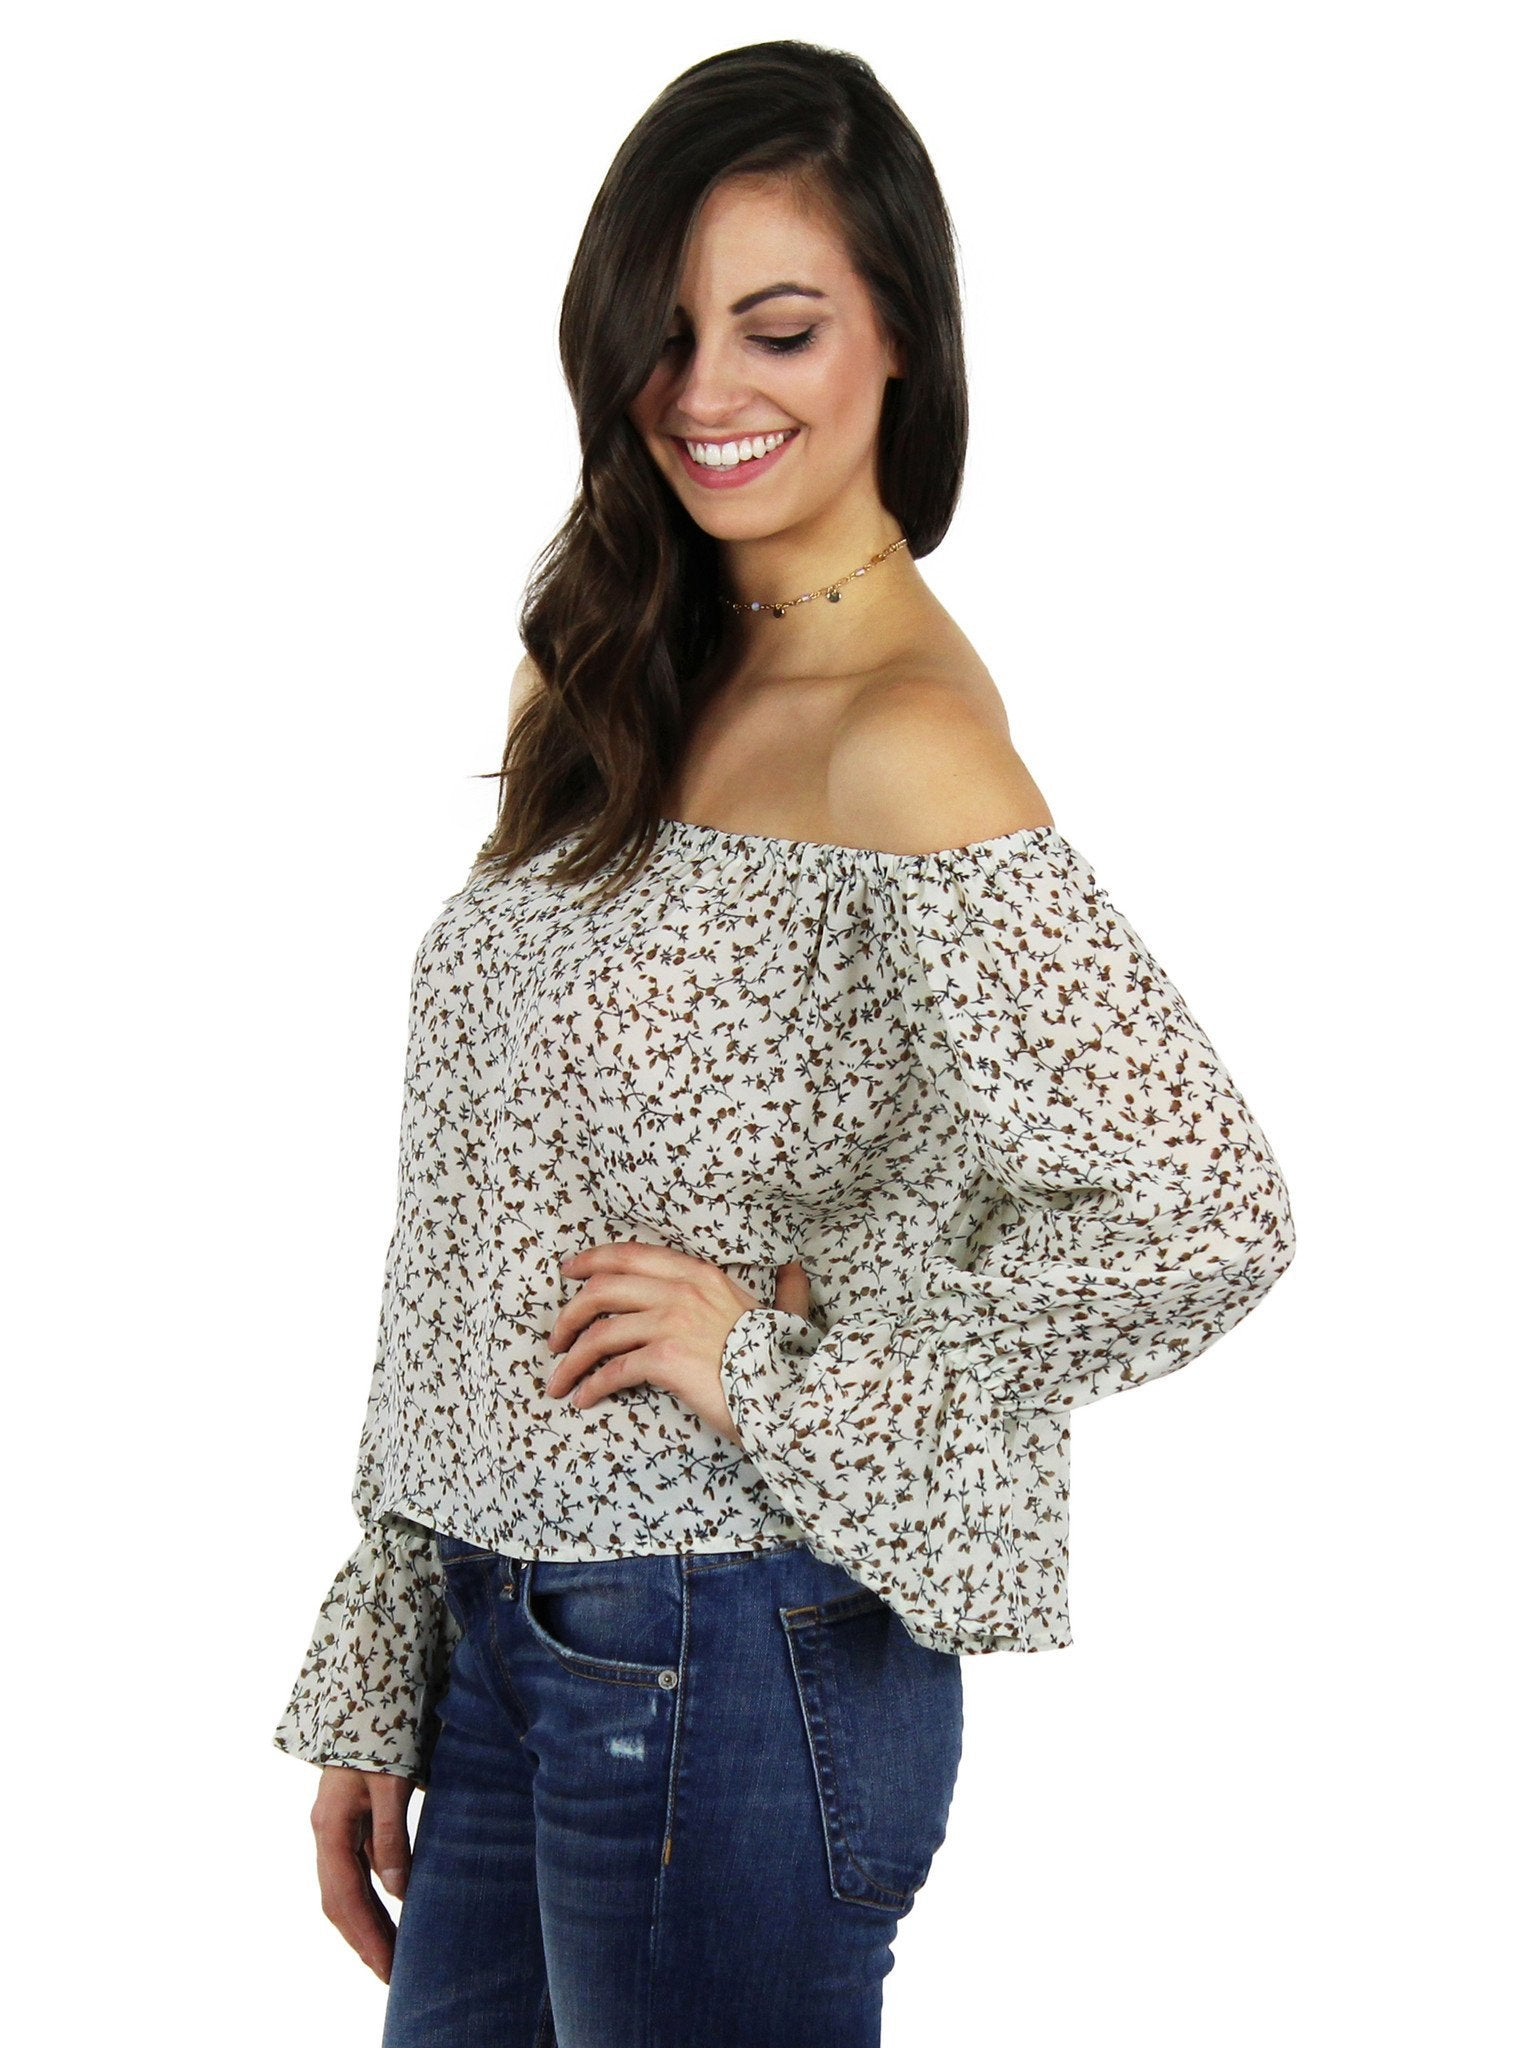 Women wearing a top rental from Lucca Couture called Off Shoulder Ruffle Sleeve Top